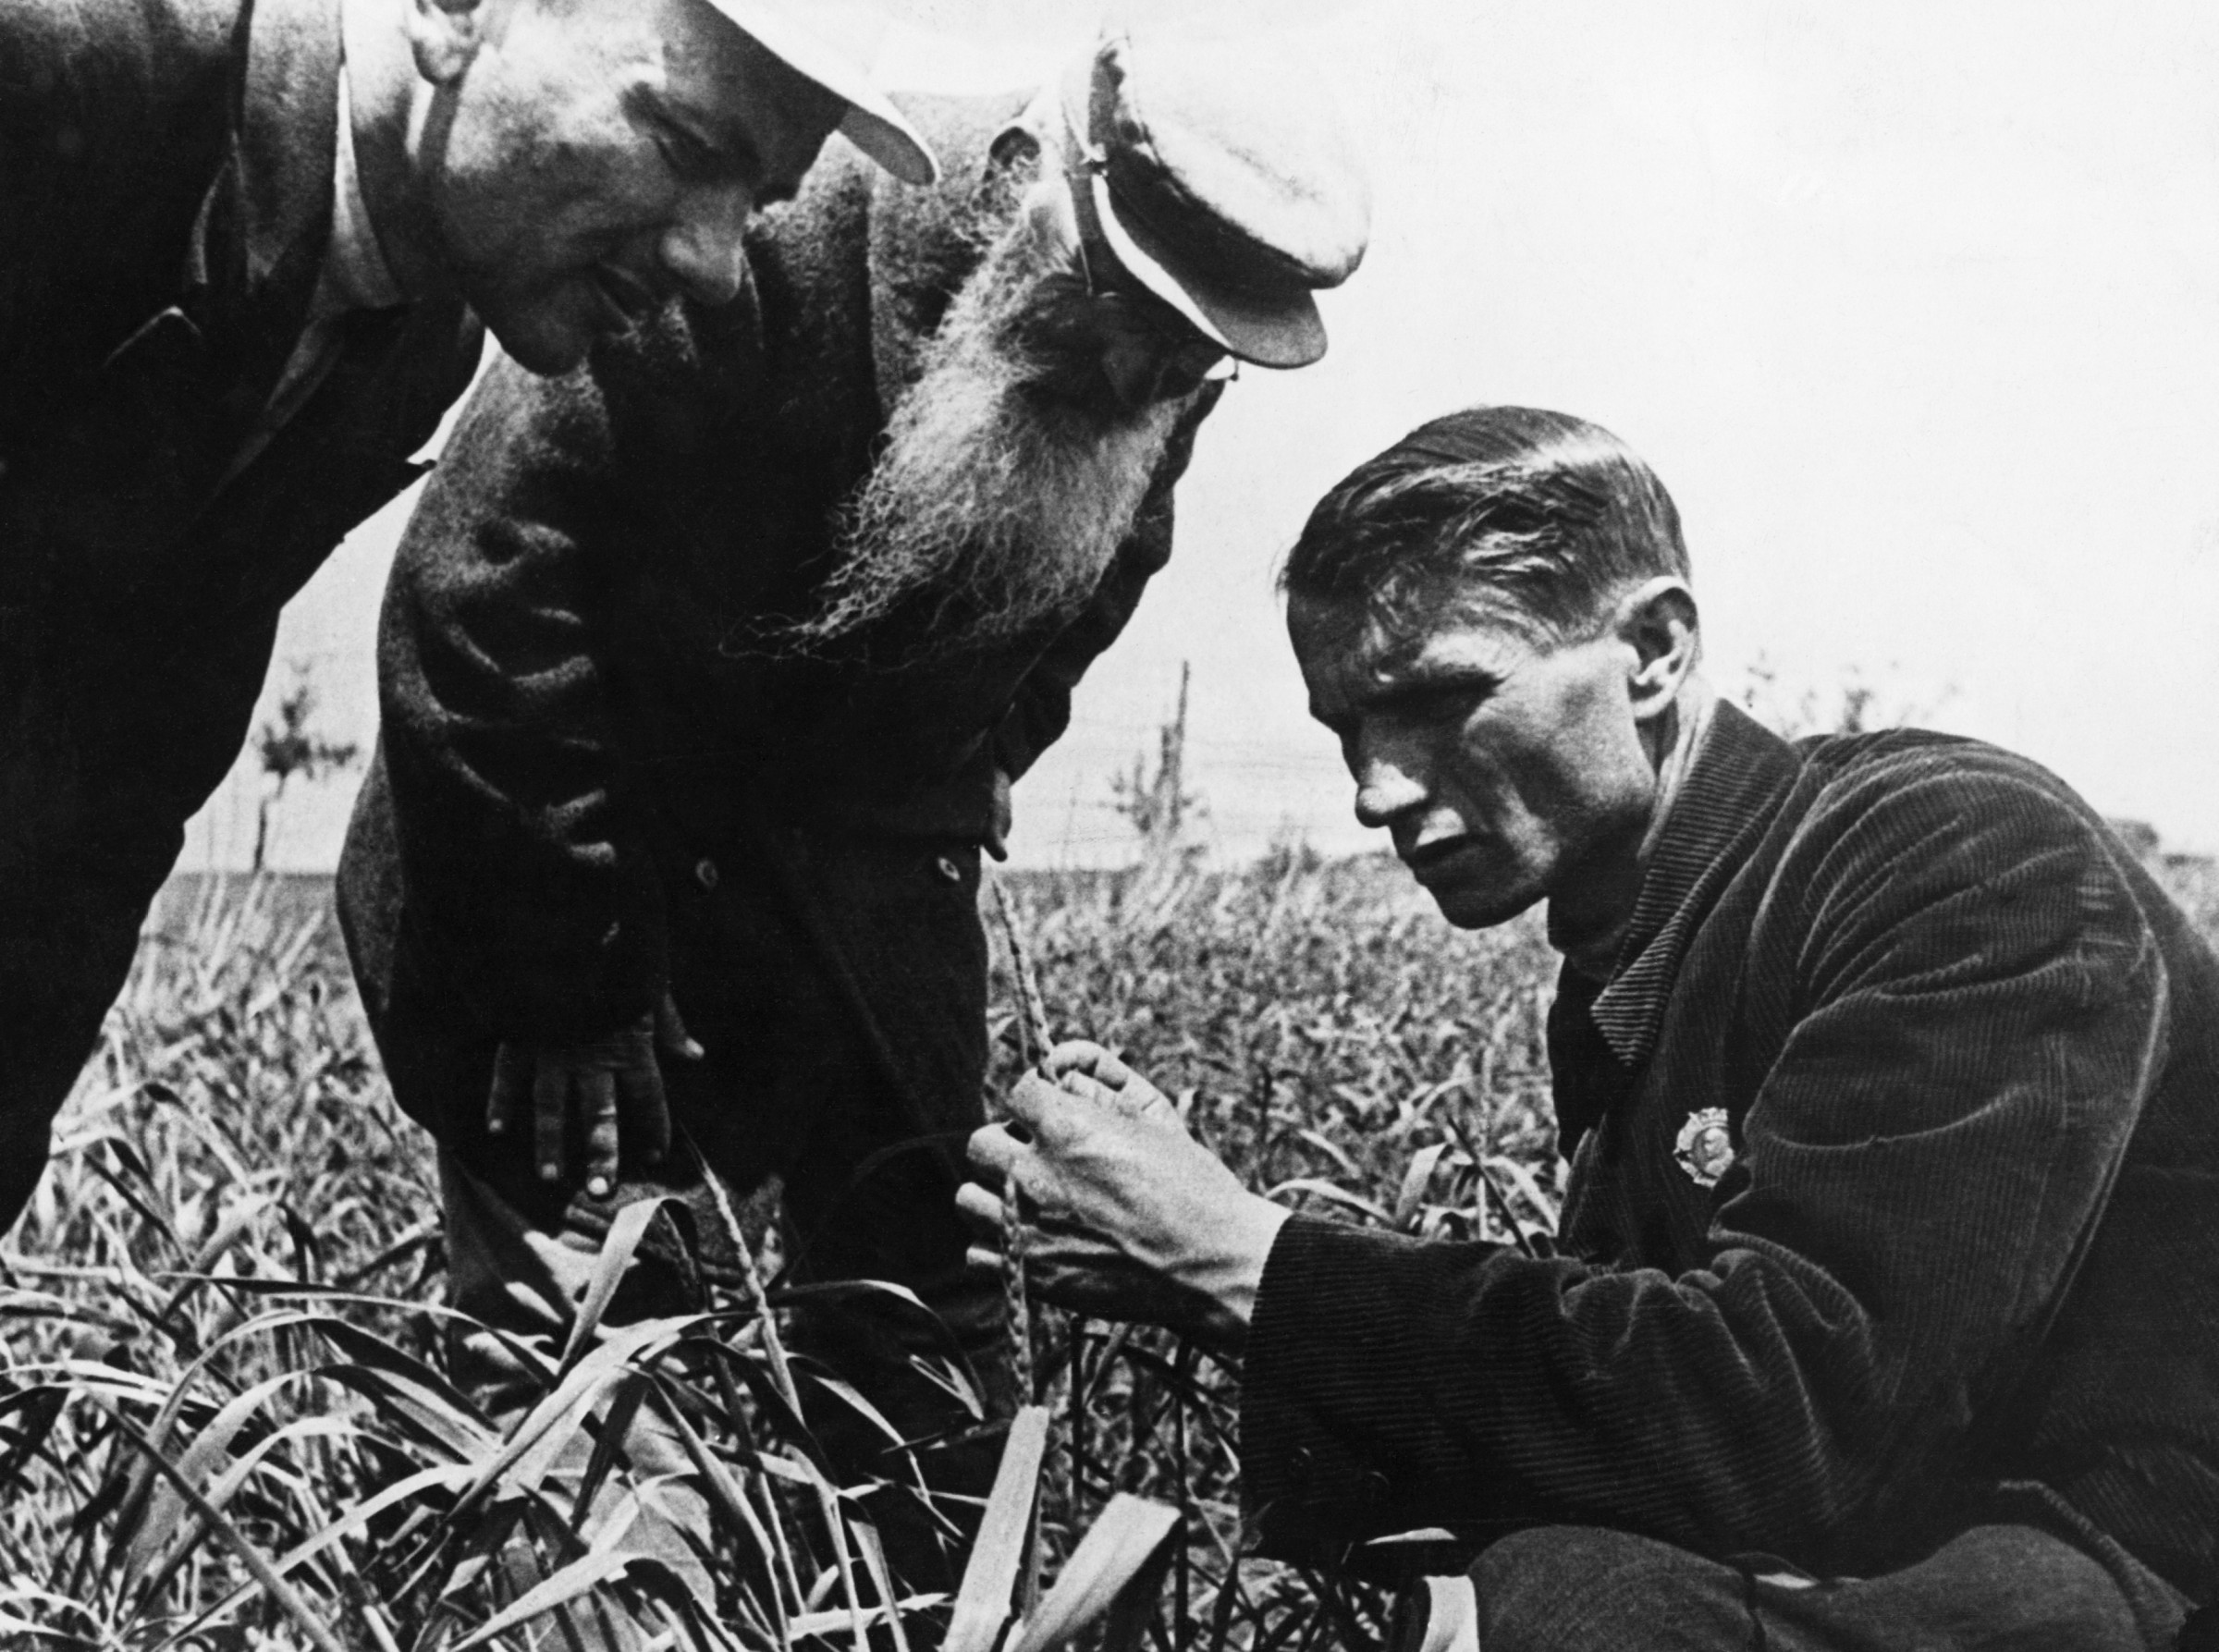 ca. 1934-1967 --- Soviet geneticist and agronomist, the President of the Lenin Academy of Agricultural Sciences, Trofim Lysenko measures the growth of wheat in a collective farm field near Odessa in the Ukraine. | Location: Odessa, USSR. --- Image by © Hulton-Deutsch Collection/CORBIS